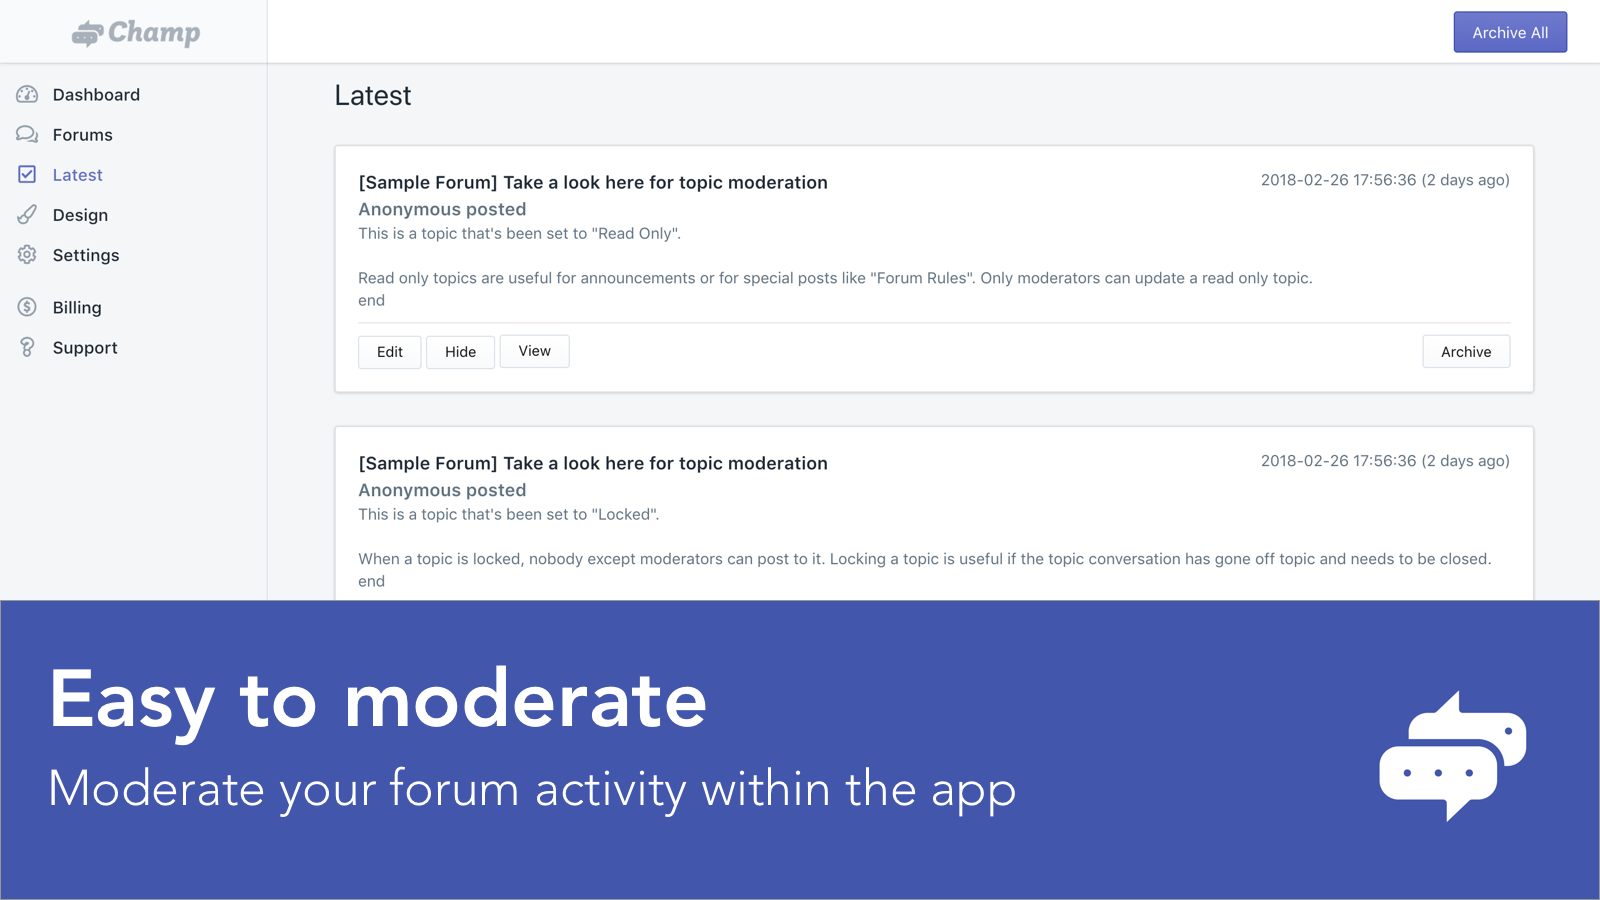 Forums are easy to moderate